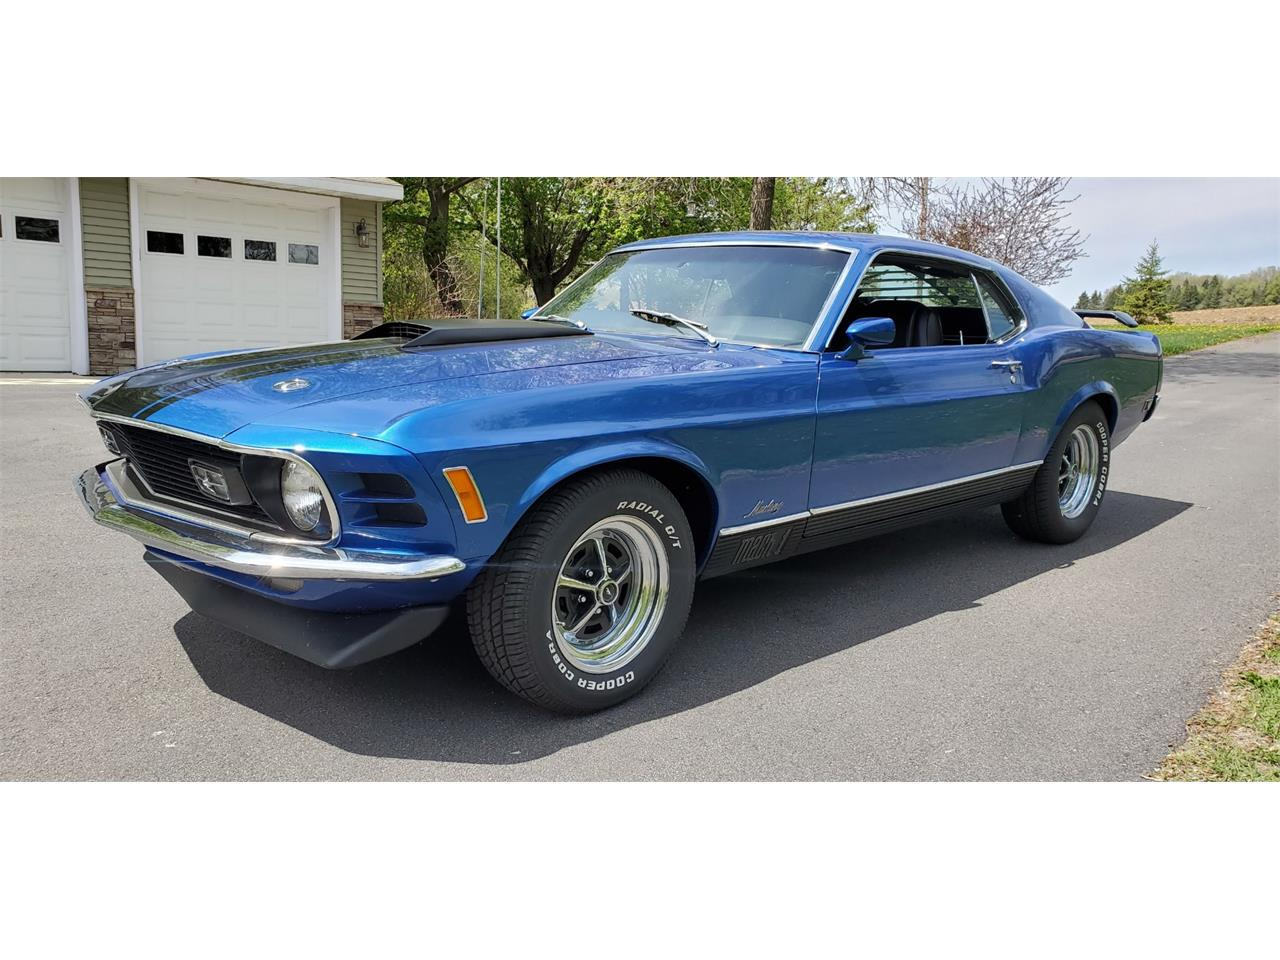 1970 Ford Mustang Mach 1 (CC-1345717) for sale in Annandale, Minnesota